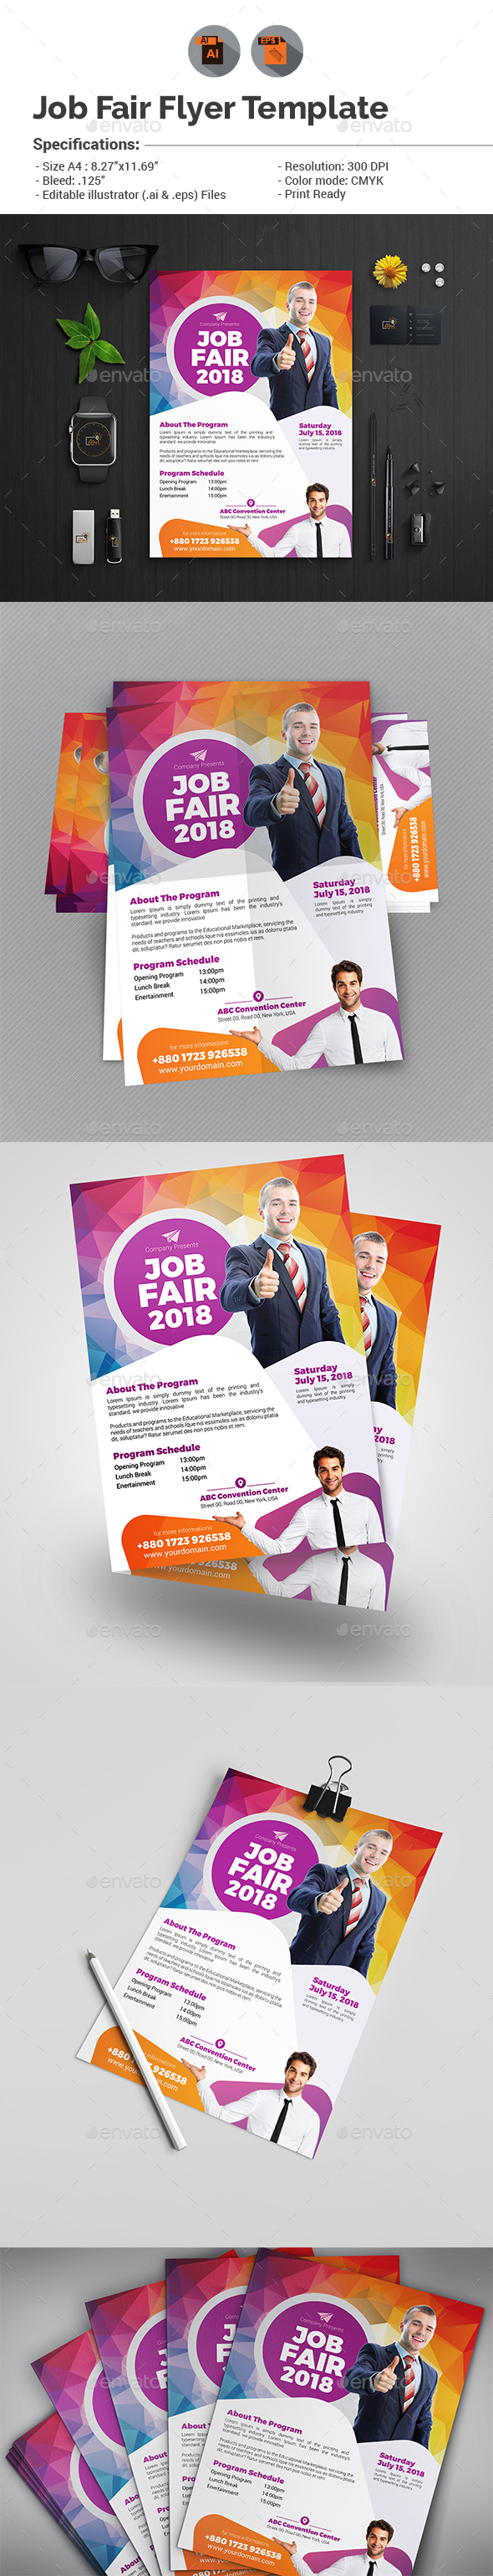 Job fair flyer template v2 by aam360 graphicriver for Job fair brochure template